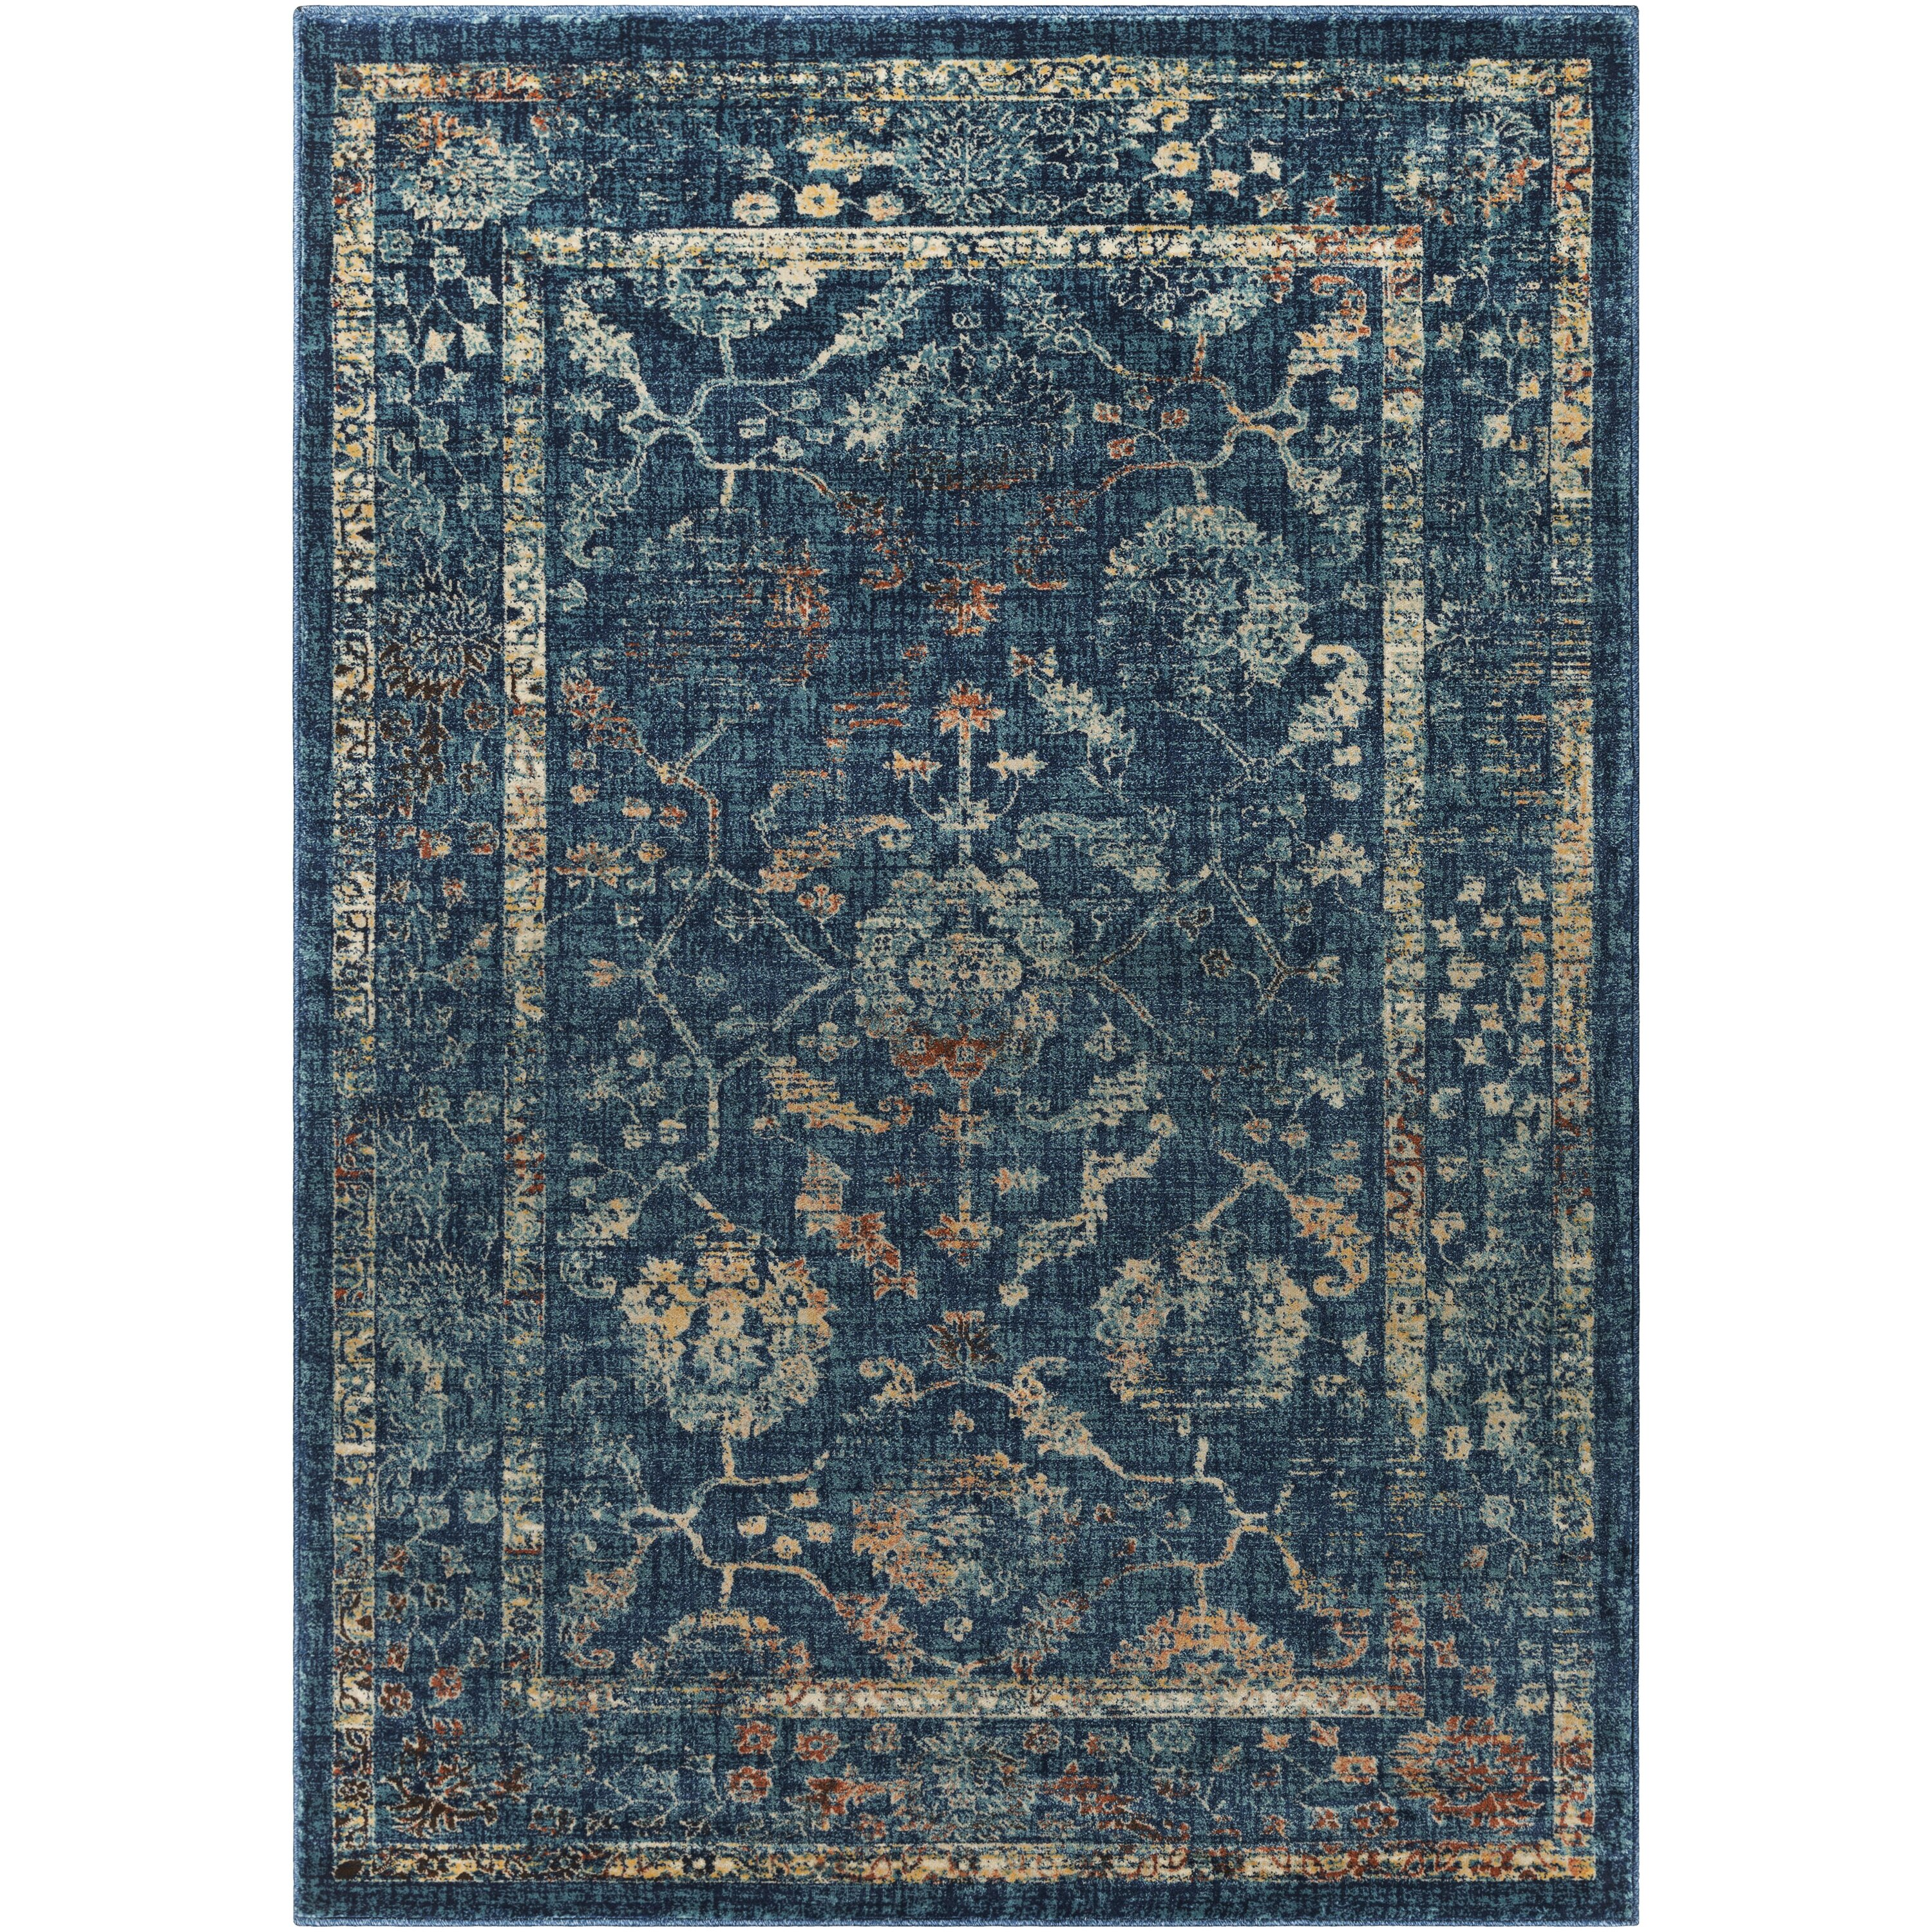 Ewing navy teal area rug joss main for Navy and teal rug